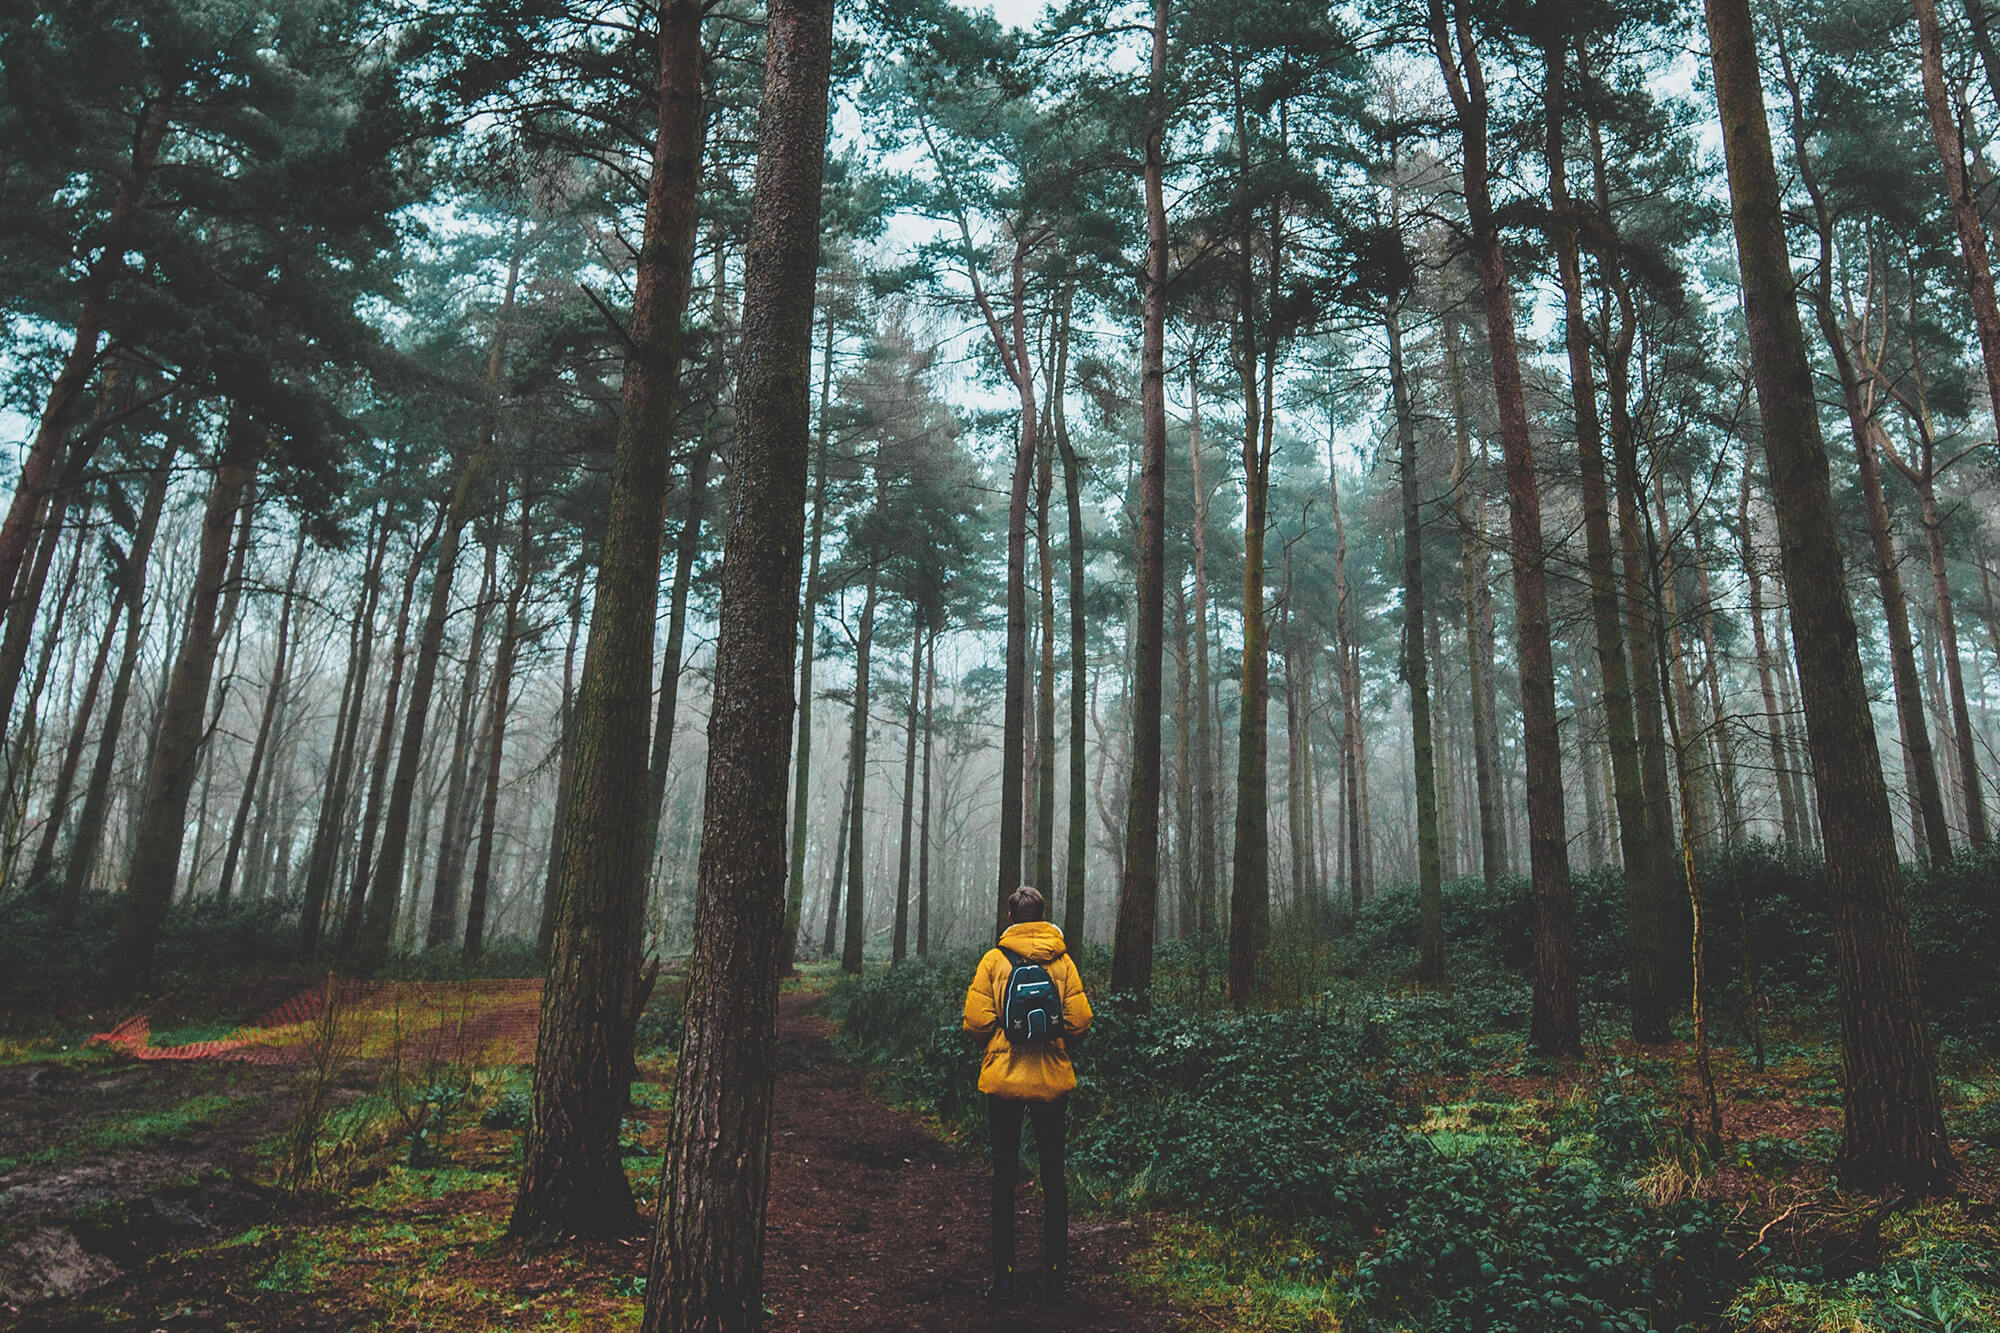 Forest containing person in a yellow jacket standing amongst tall trees